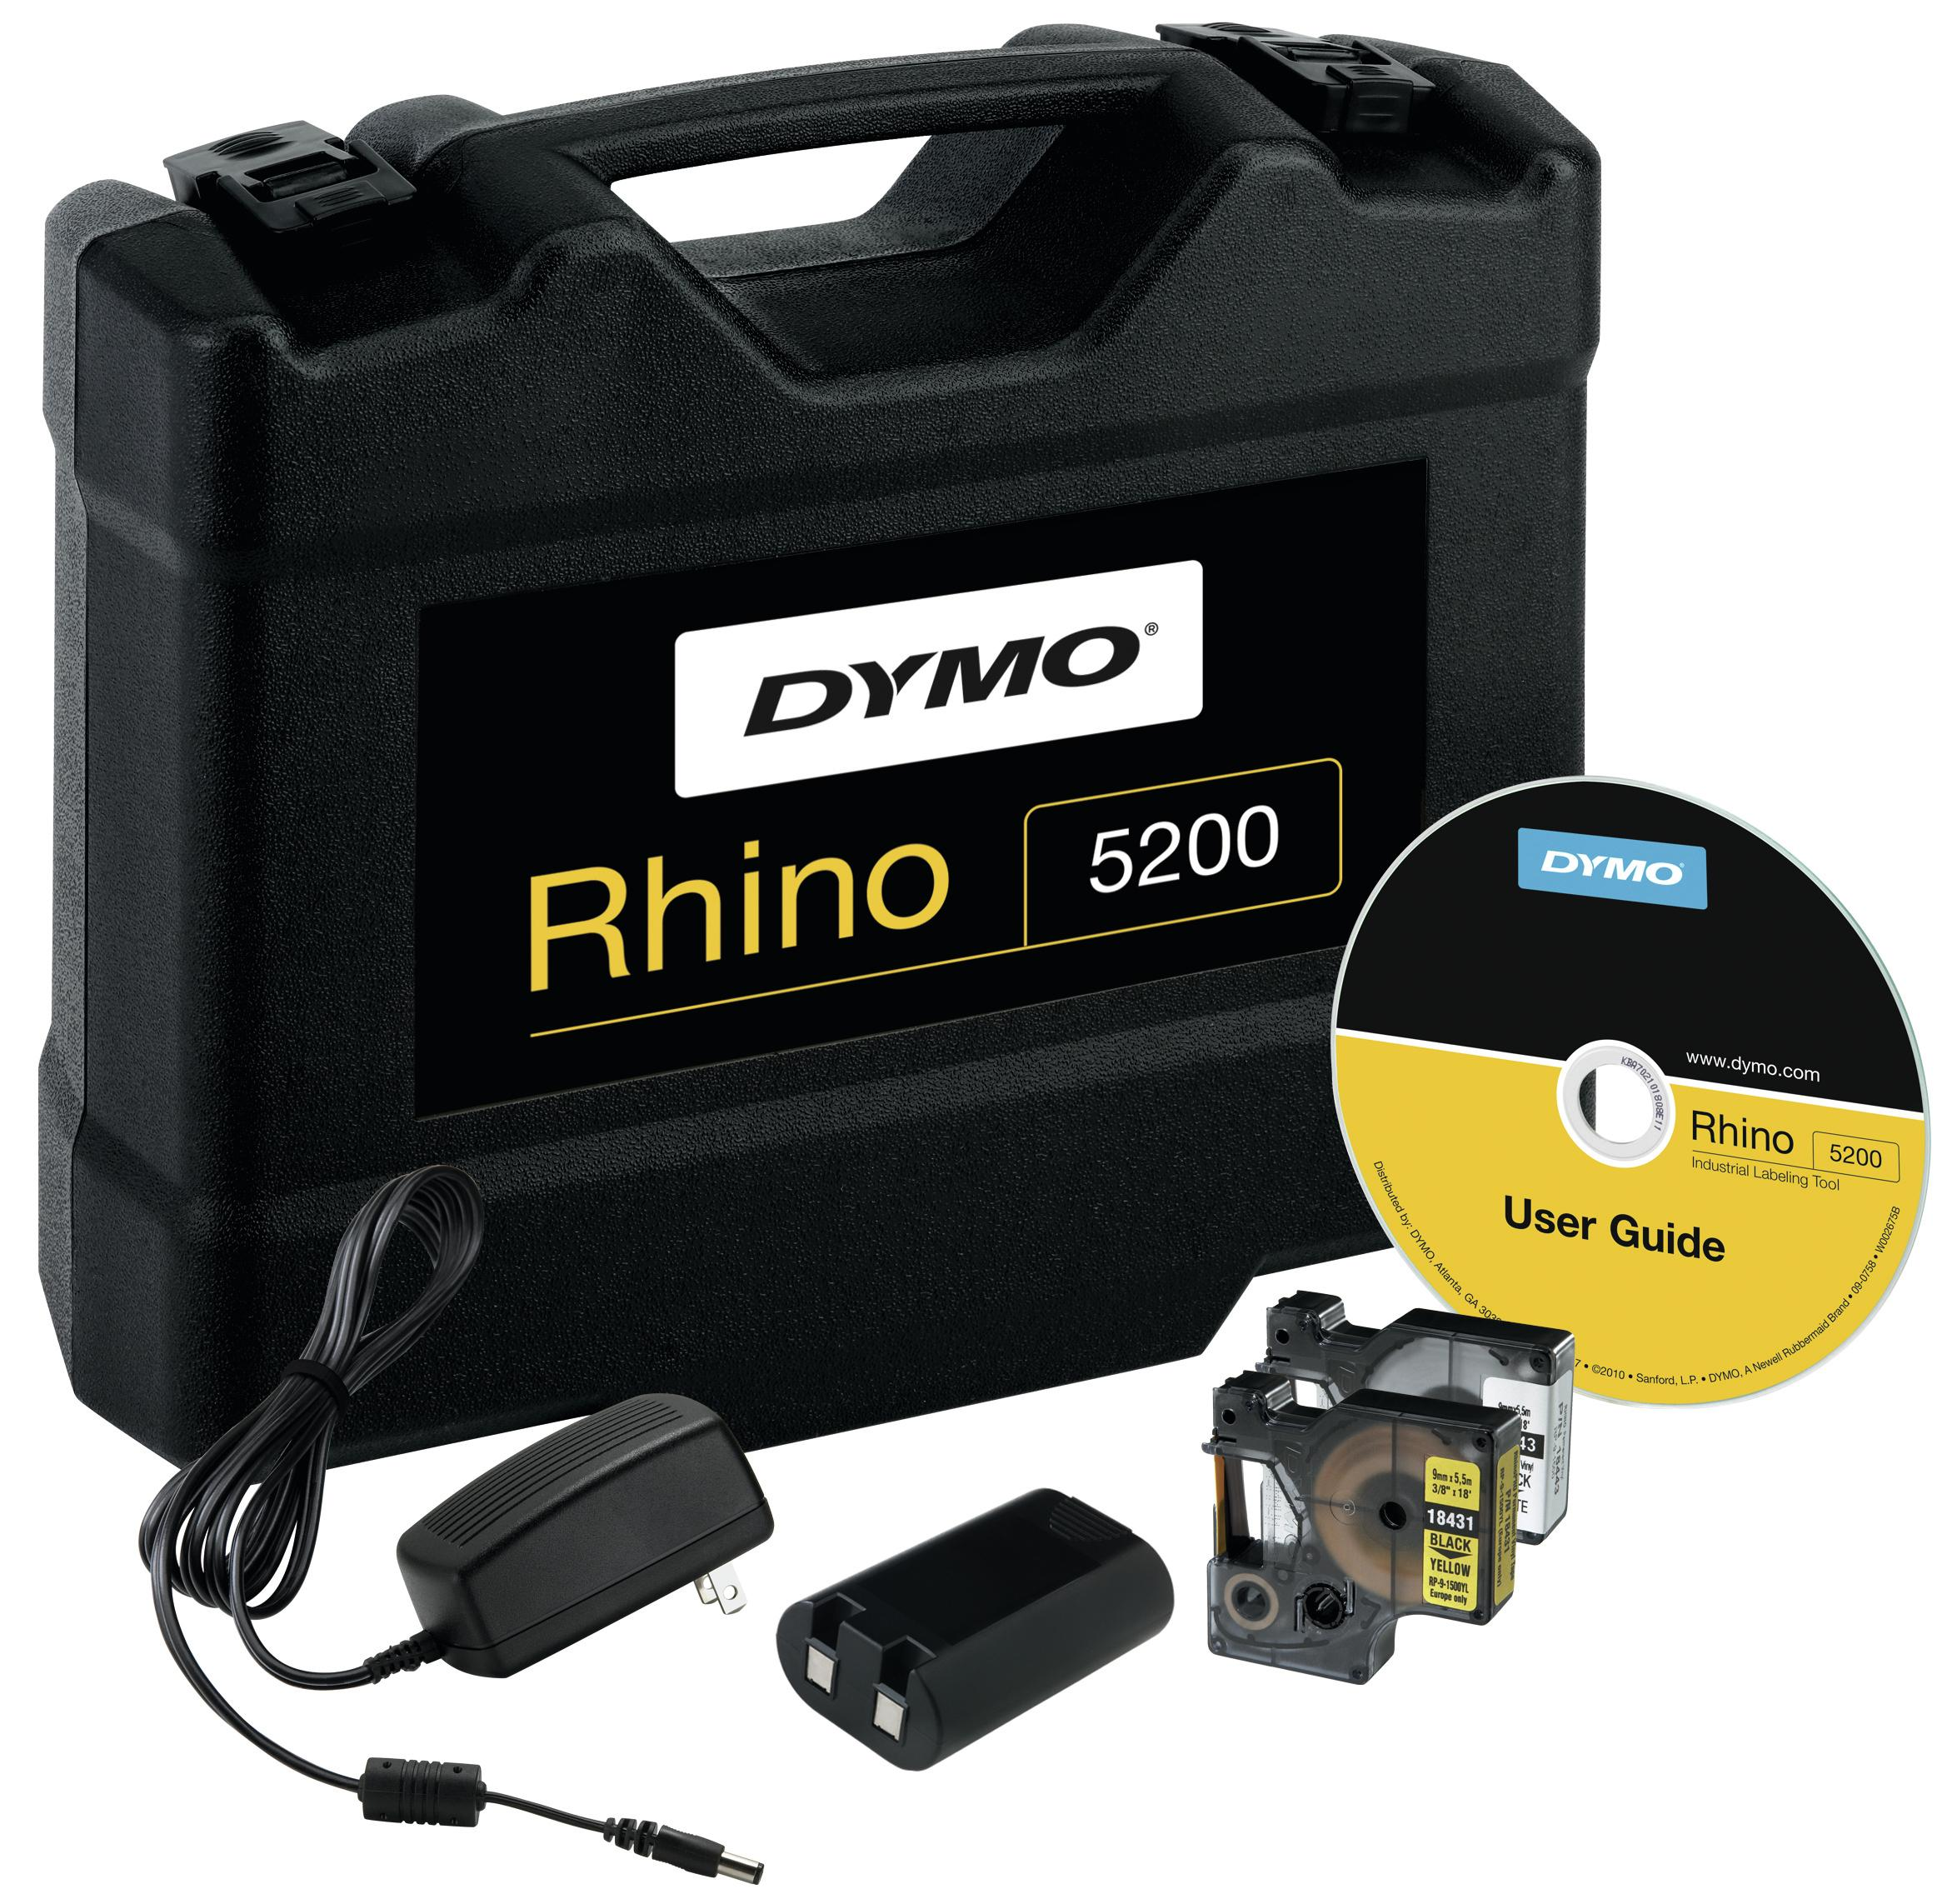 Dymo Labelprinter Rhino 5200 Kit